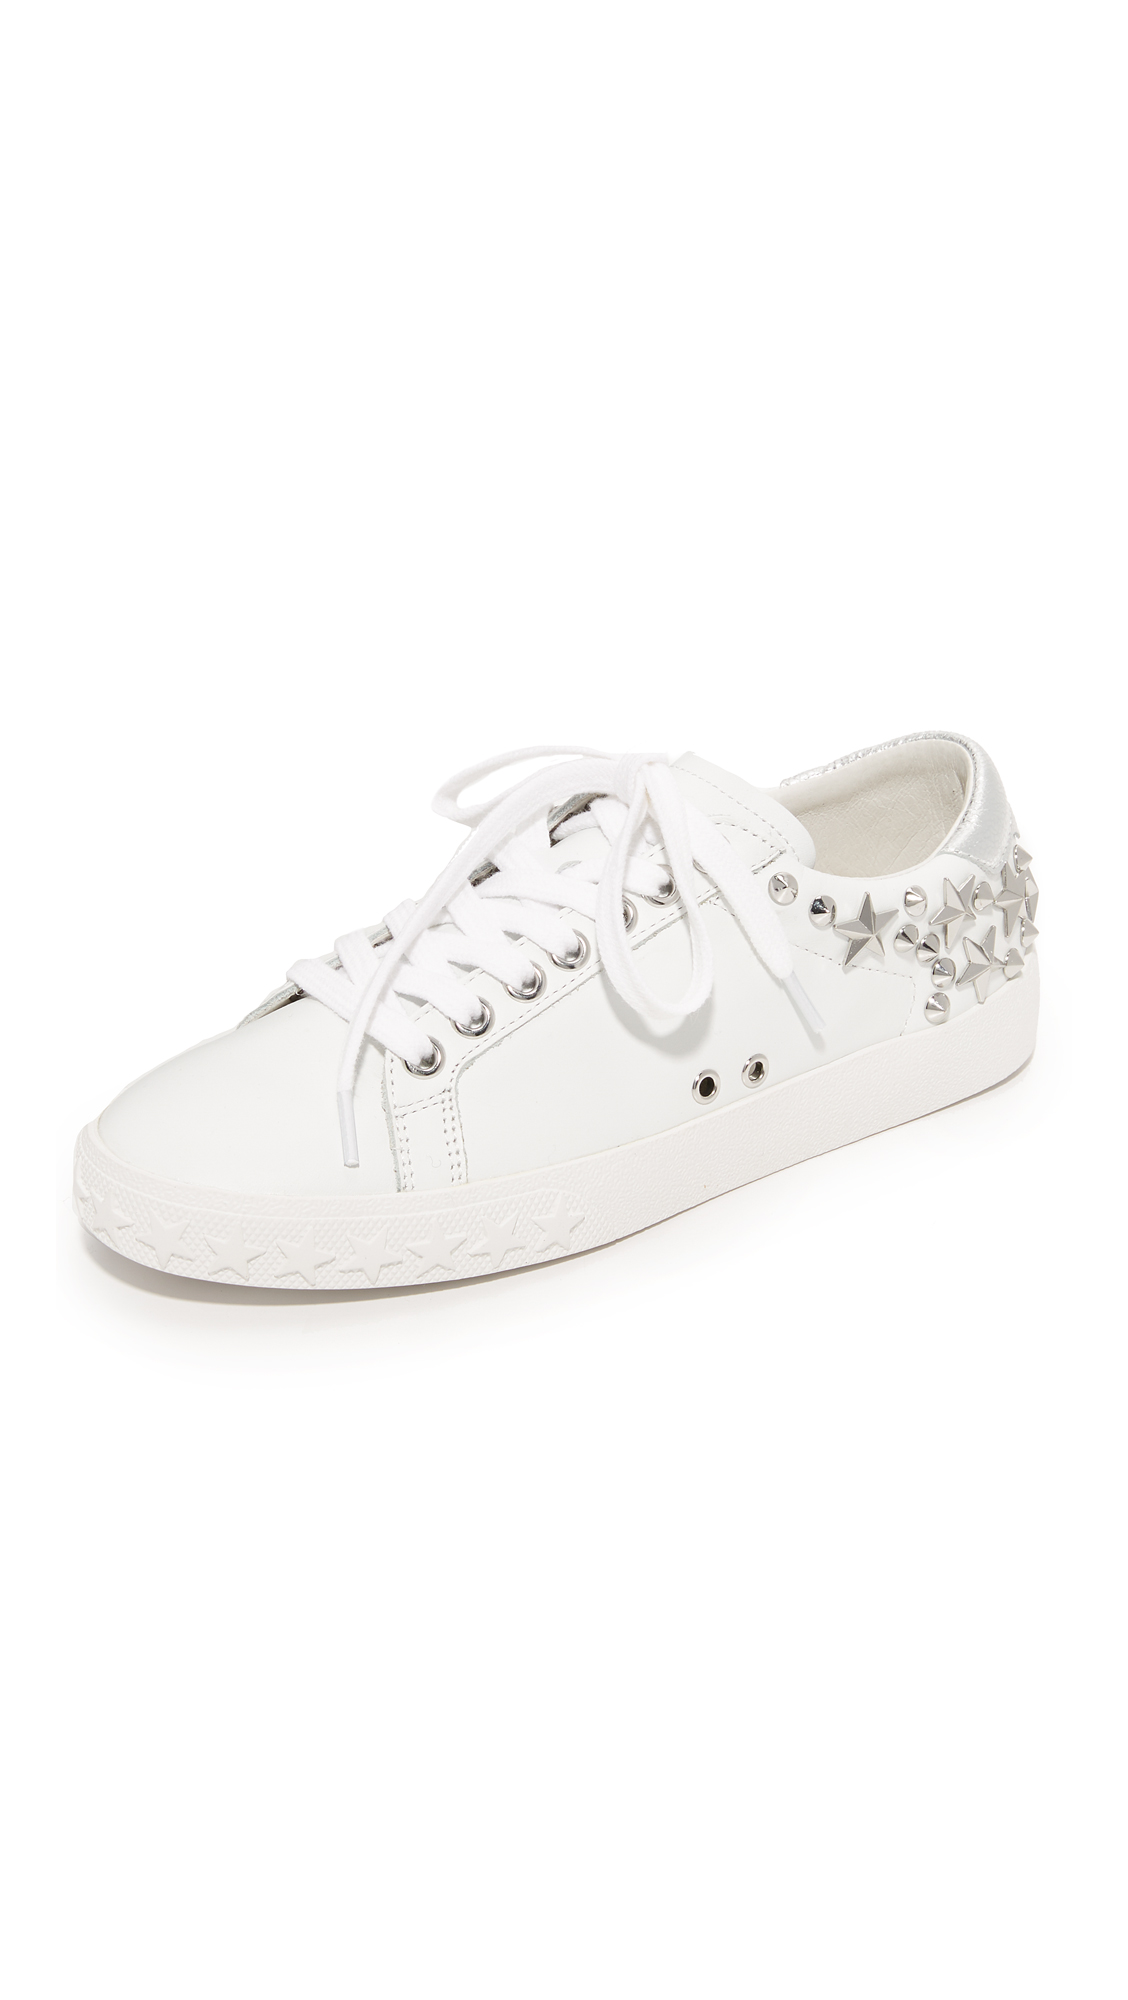 Ash Dazed Sneakers - White/Silver